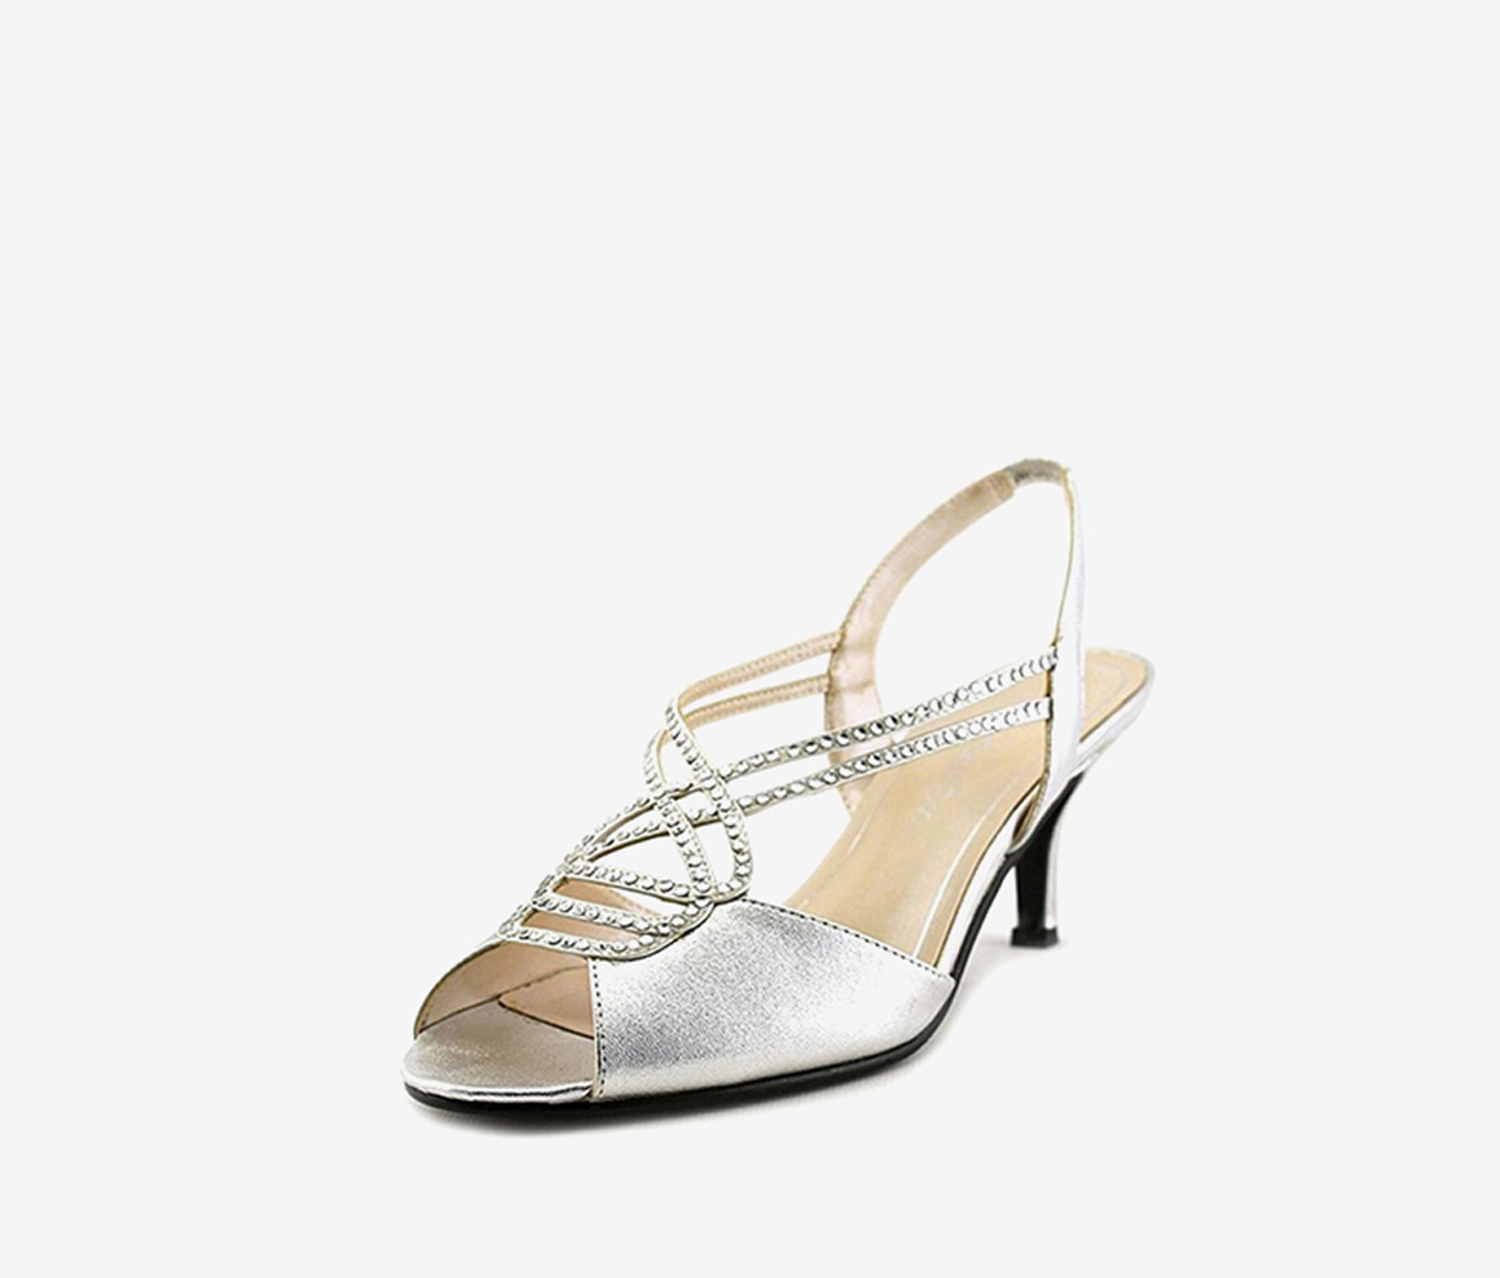 Caparros Philomena Evening Sandals, Silver Metallic